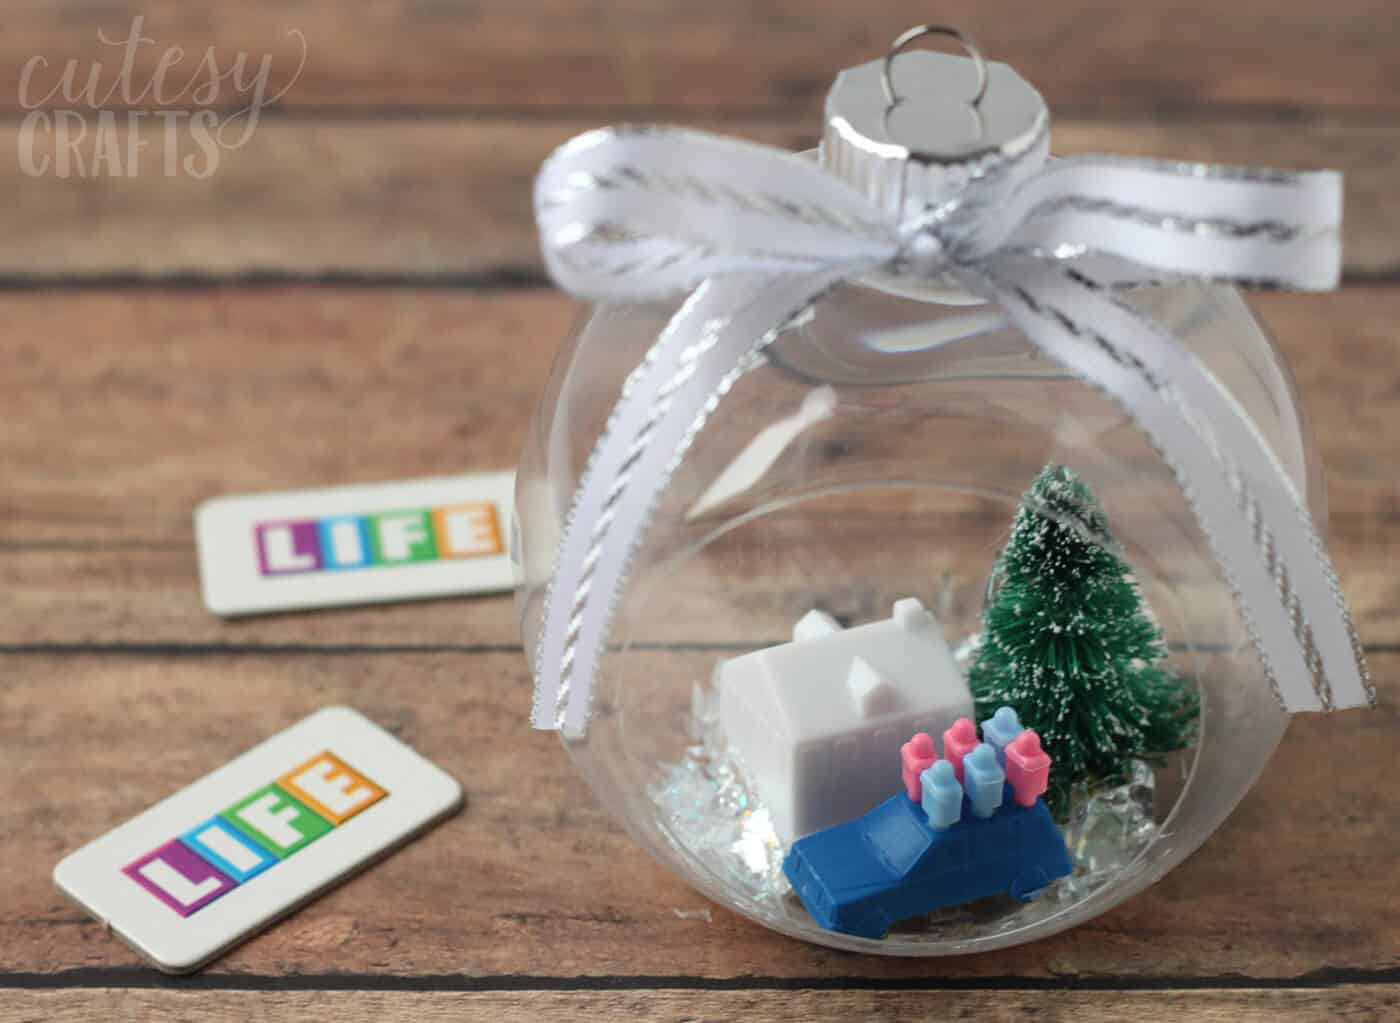 Make Your Own Christmas ornaments Awesome Diy Christmas Tree ornaments Game Of Life Diy Candy Of Innovative 44 Pics Make Your Own Christmas ornaments